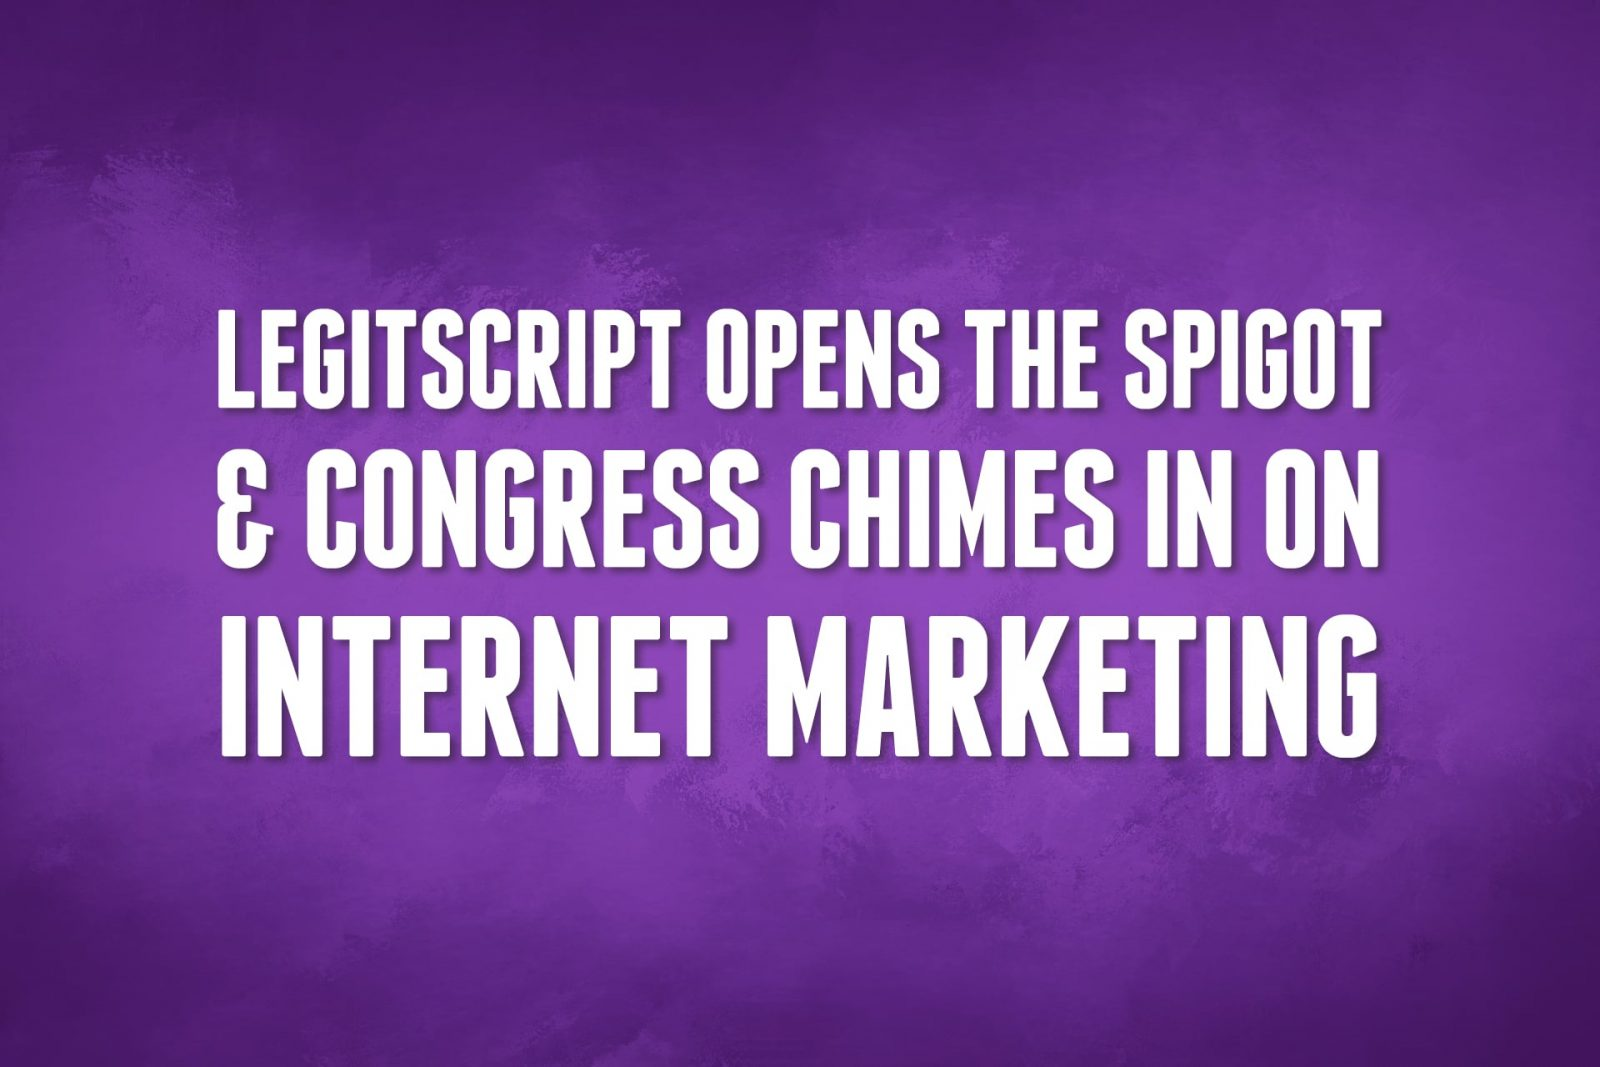 LegitScript Opens The Spigot & Congress Chimes In on Internet Marketing